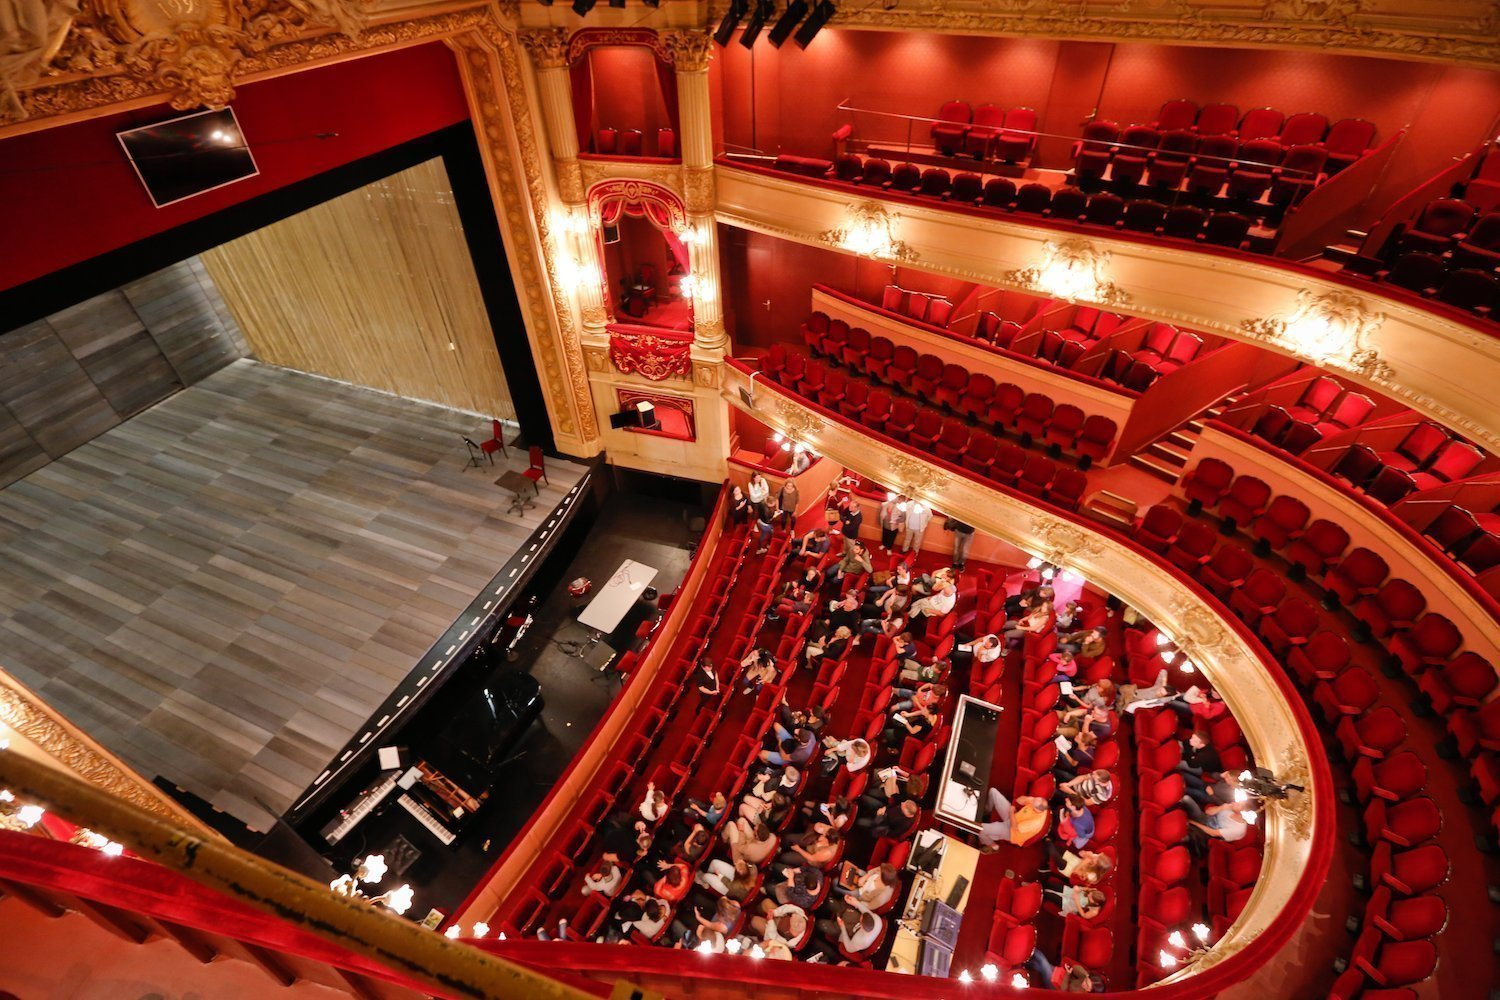 Inside the Rennes Opera house